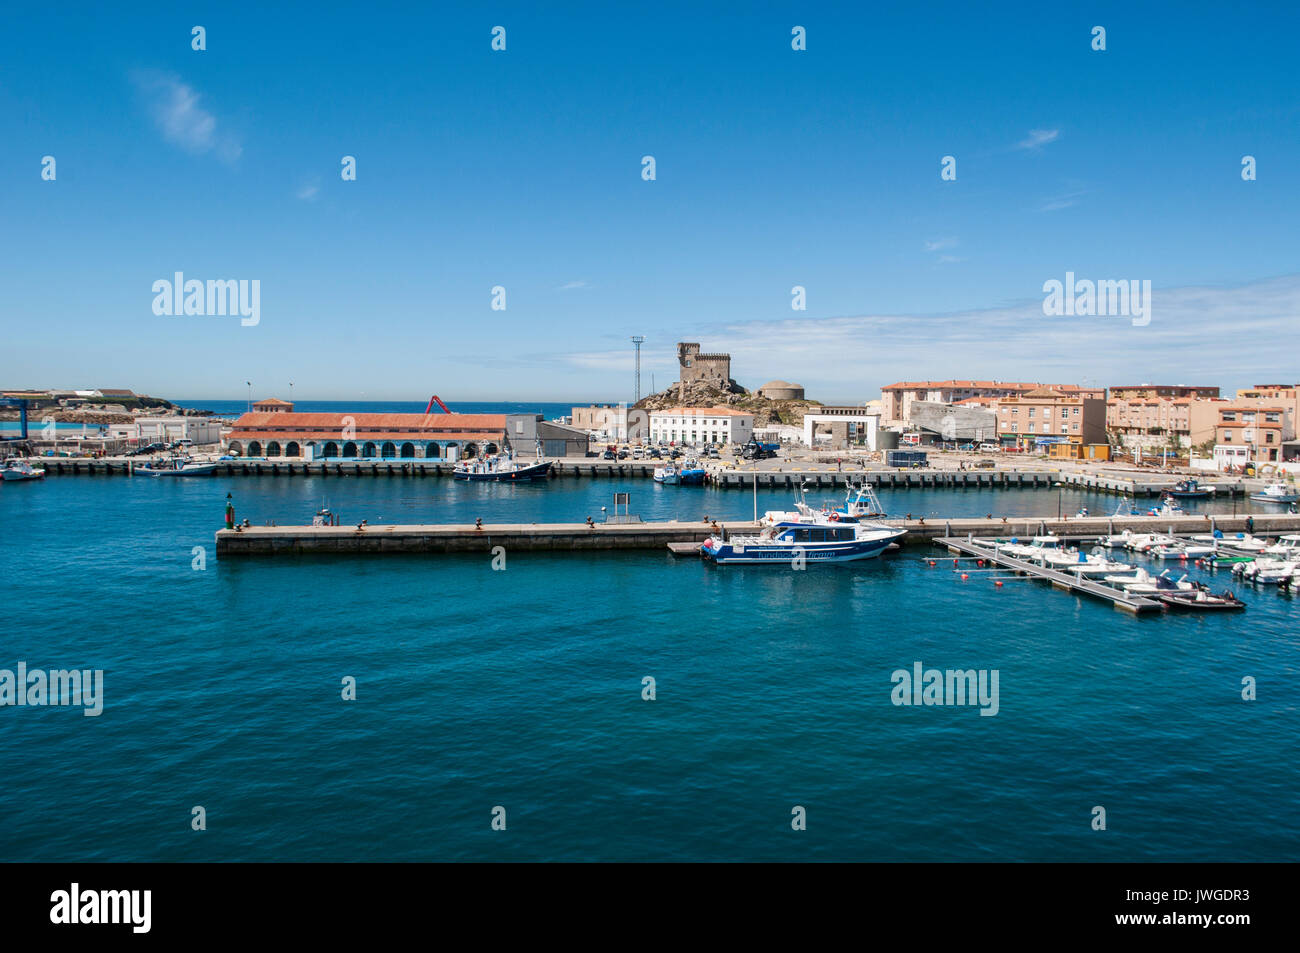 Ferry departure spain stock photos ferry departure spain - Moroccan port on the strait of gibraltar ...